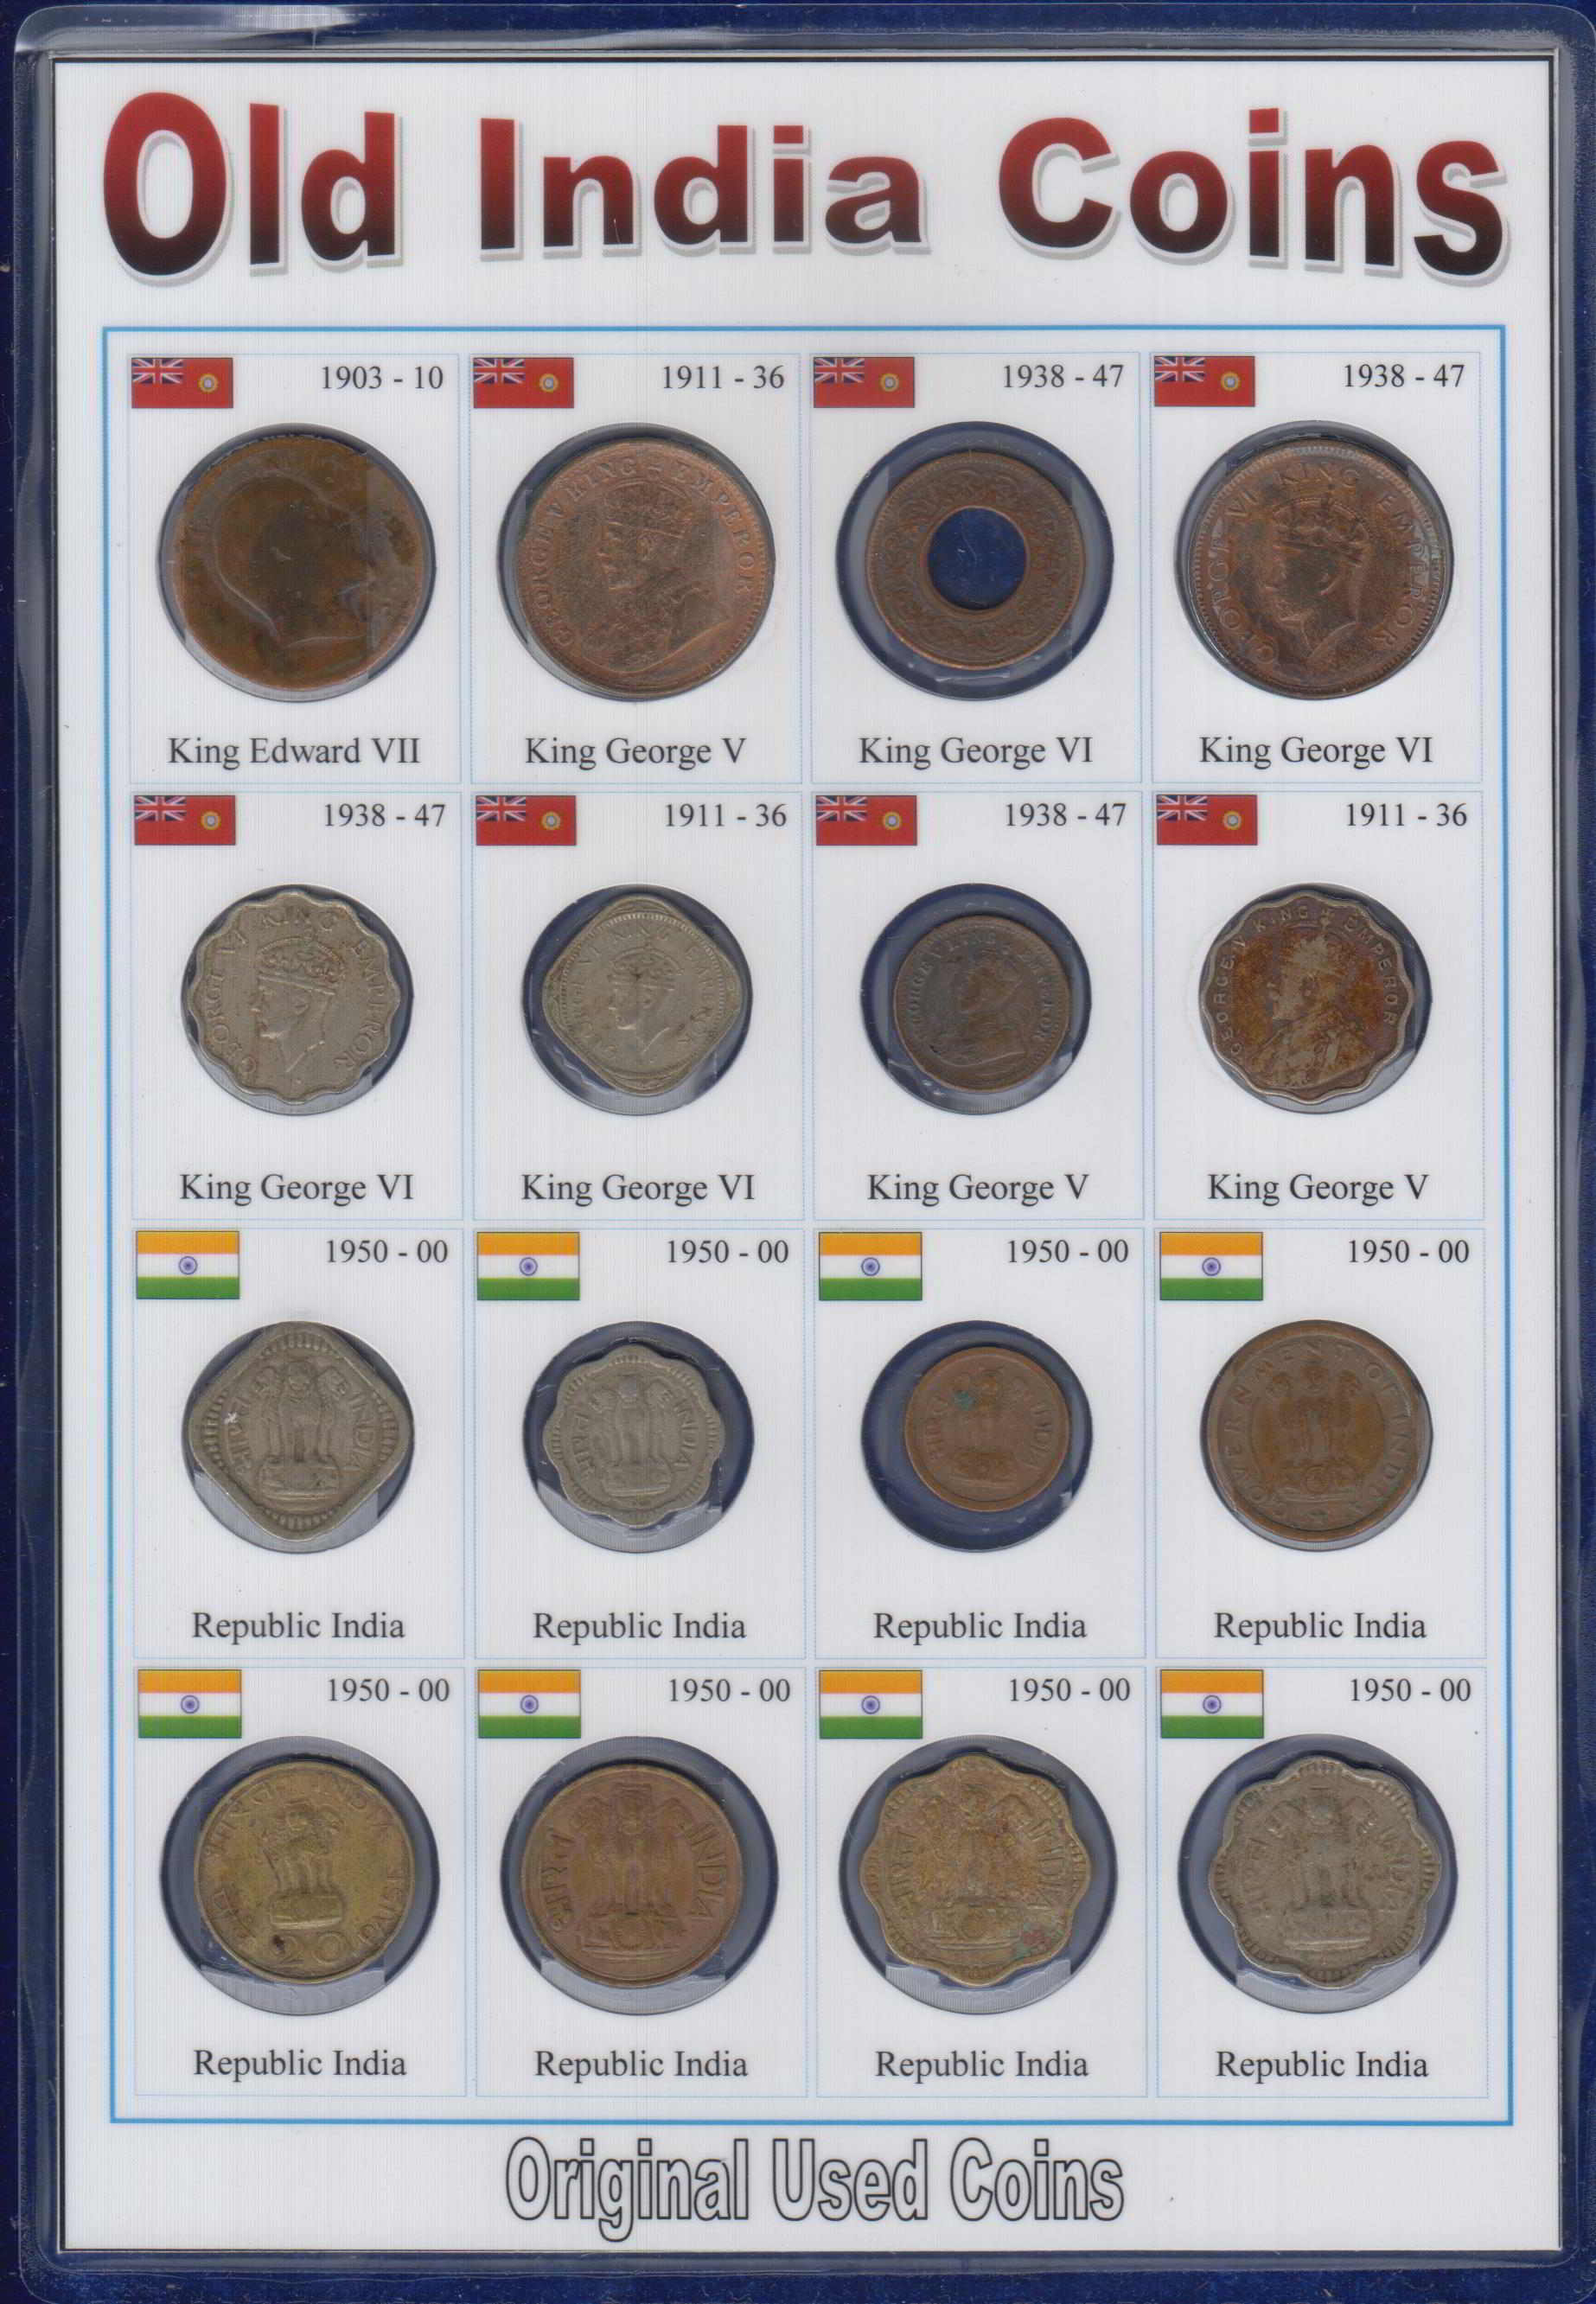 Old Indian Coins Bristish India Coins Republic India